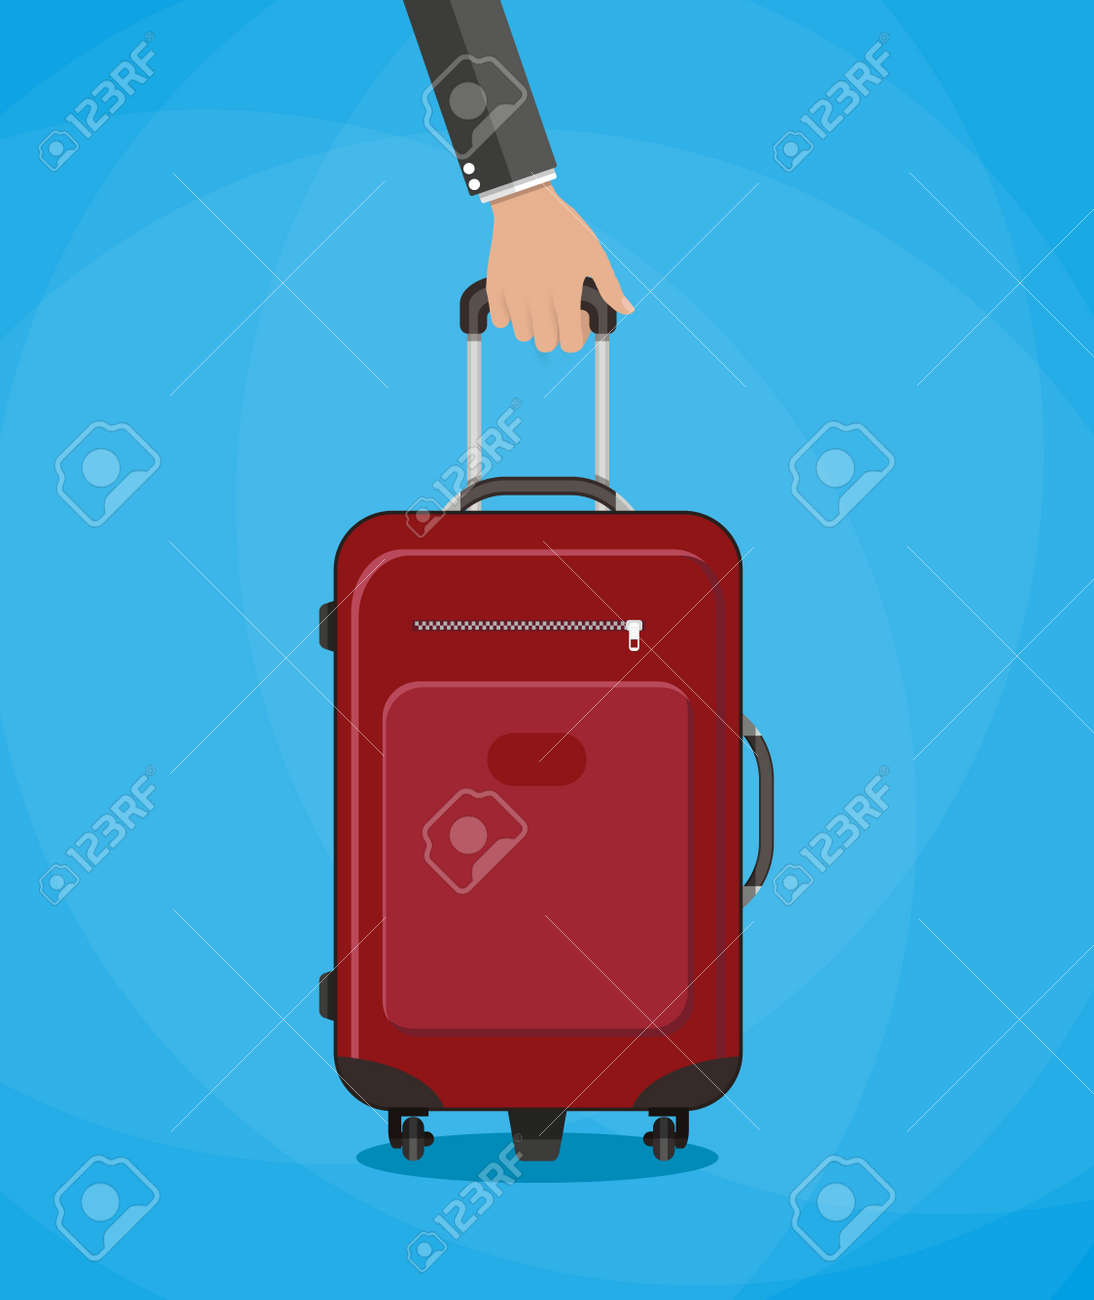 Hand Holding Red Travel Bag Vector Illustration On Blue Background Royalty Free Cliparts Vectors And Stock Illustration Image 52224439